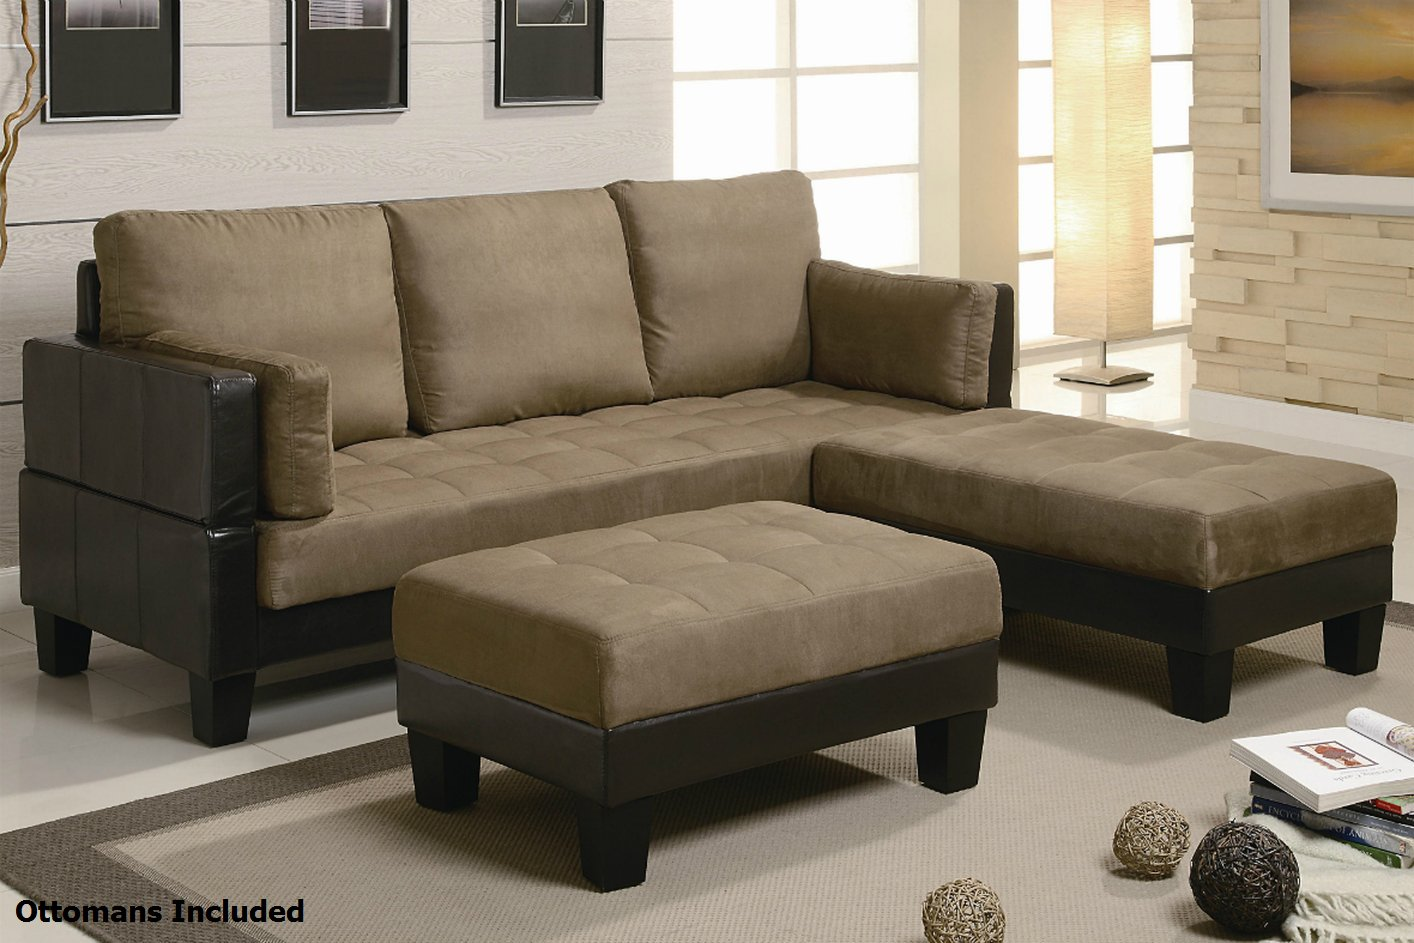 Coaster 300160 brown fabric sectional sofa and ottoman for Brown fabric couch